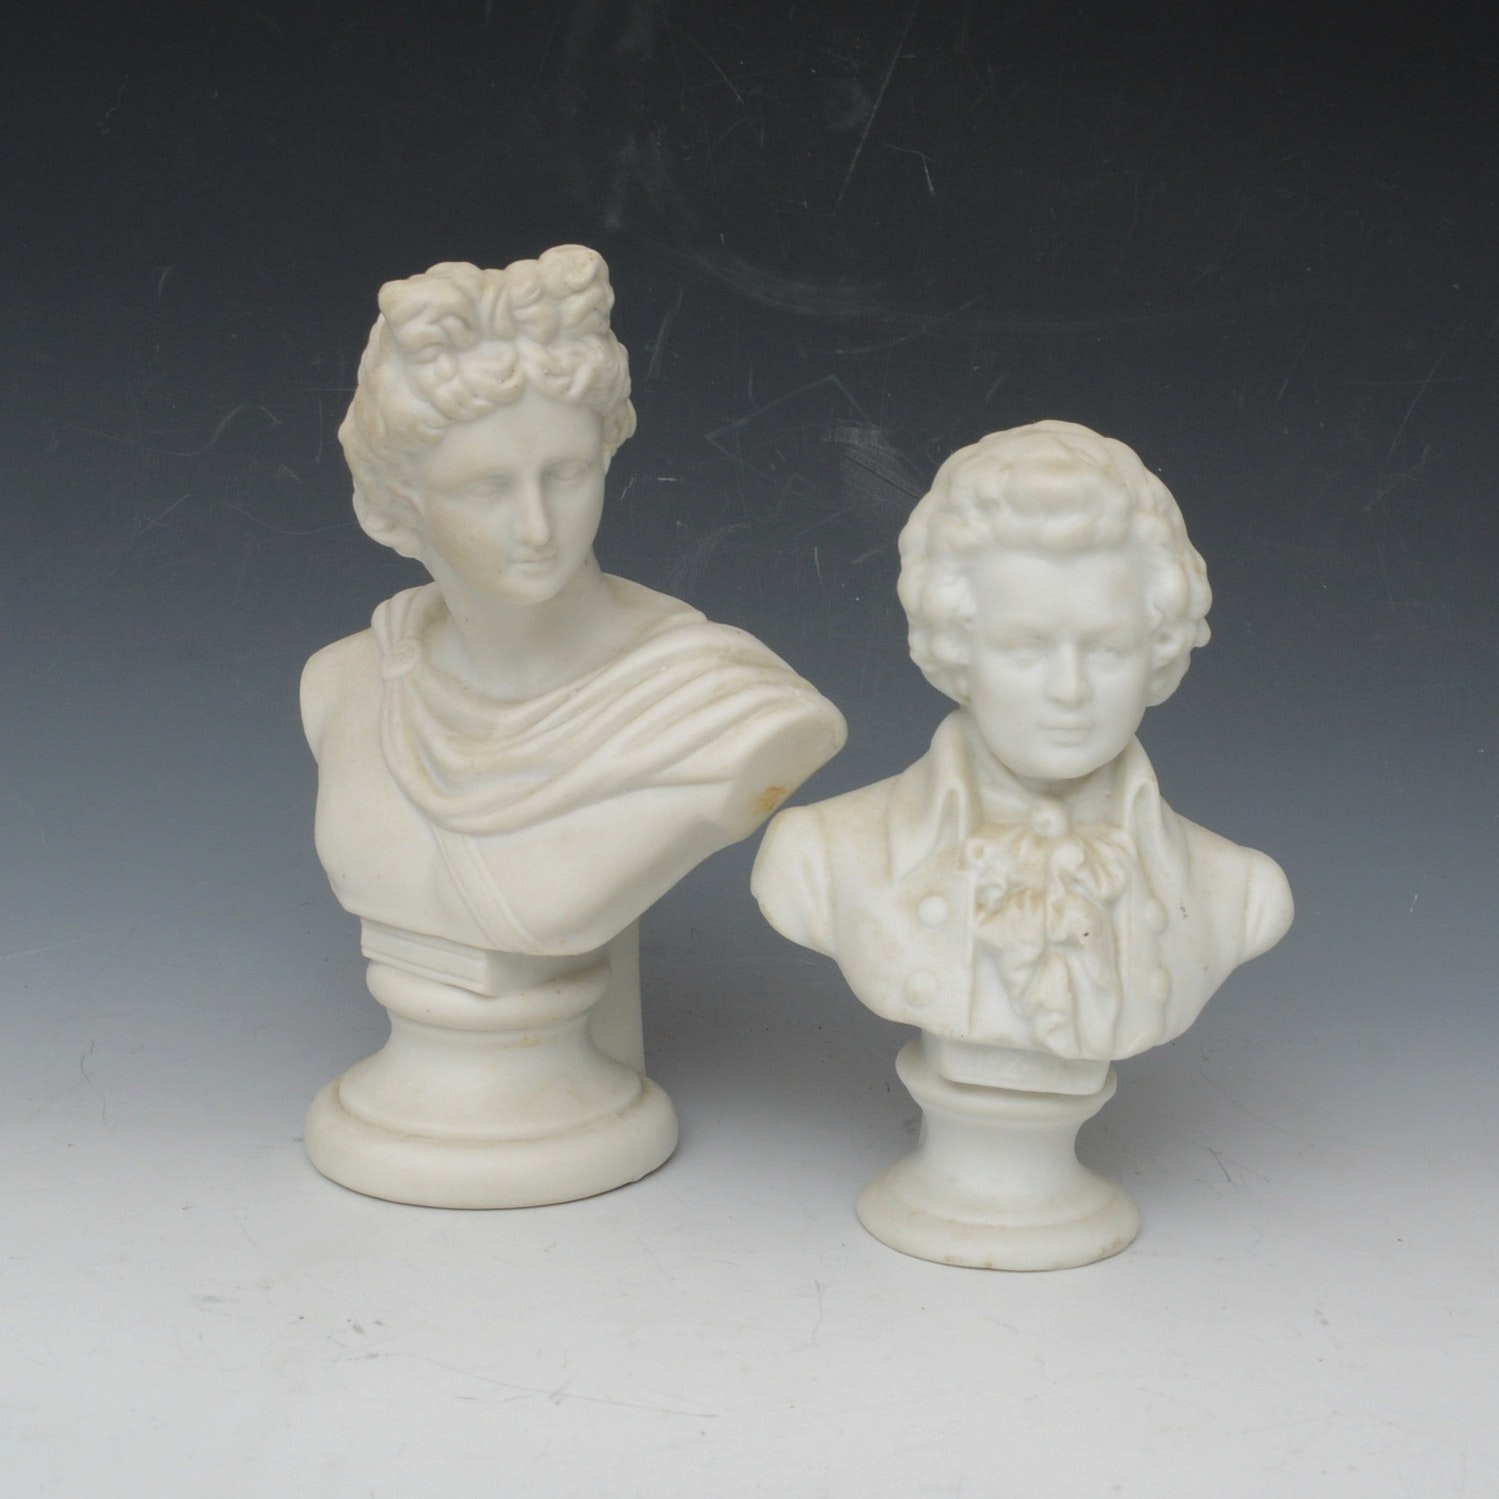 Vintage Marble Dust Busts